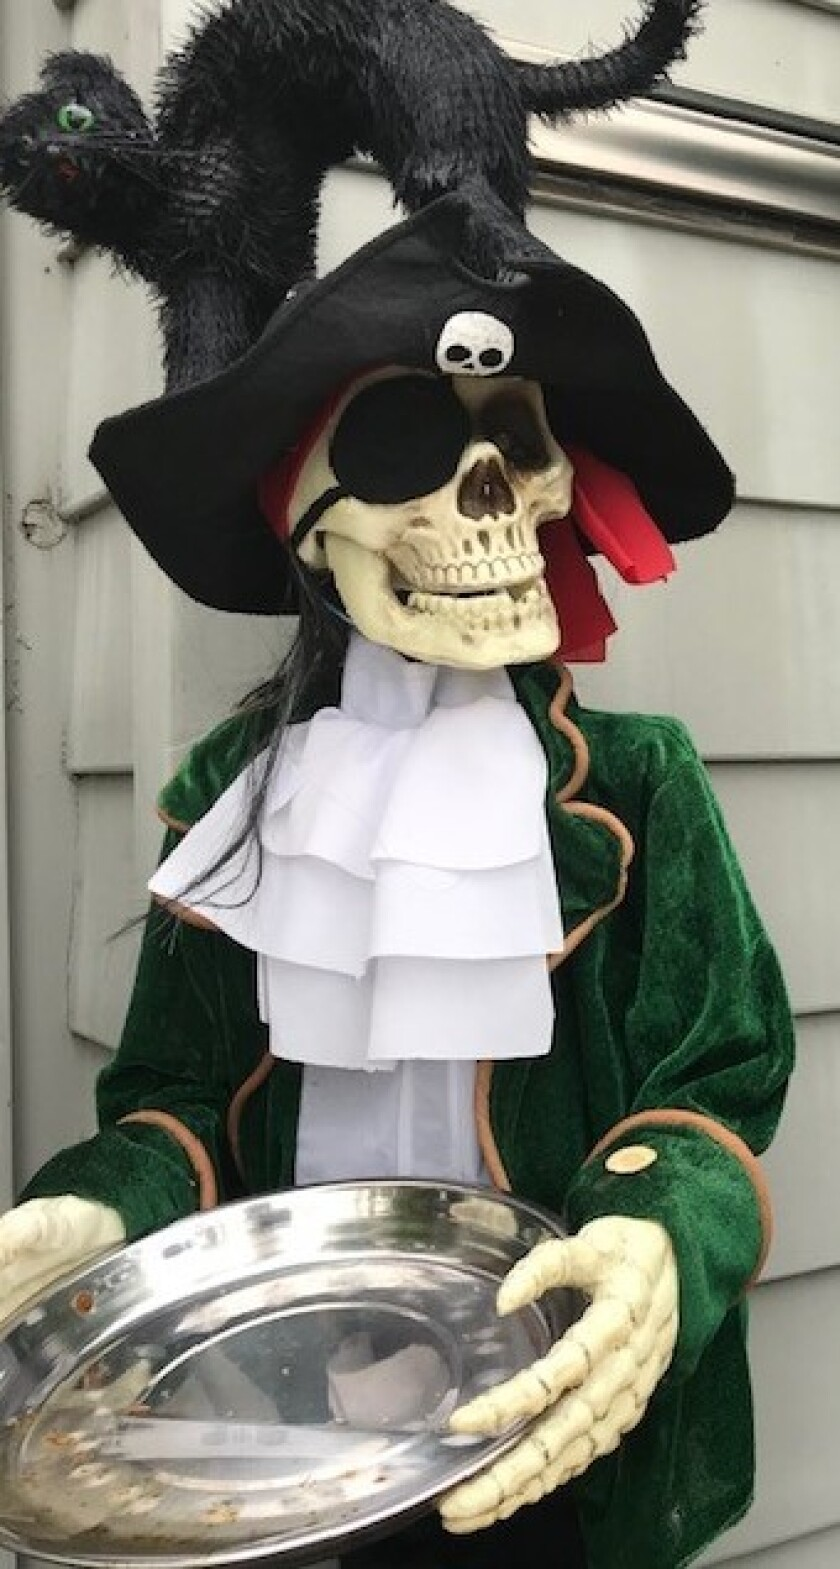 Halloween festivities are being hosted throughout North County.